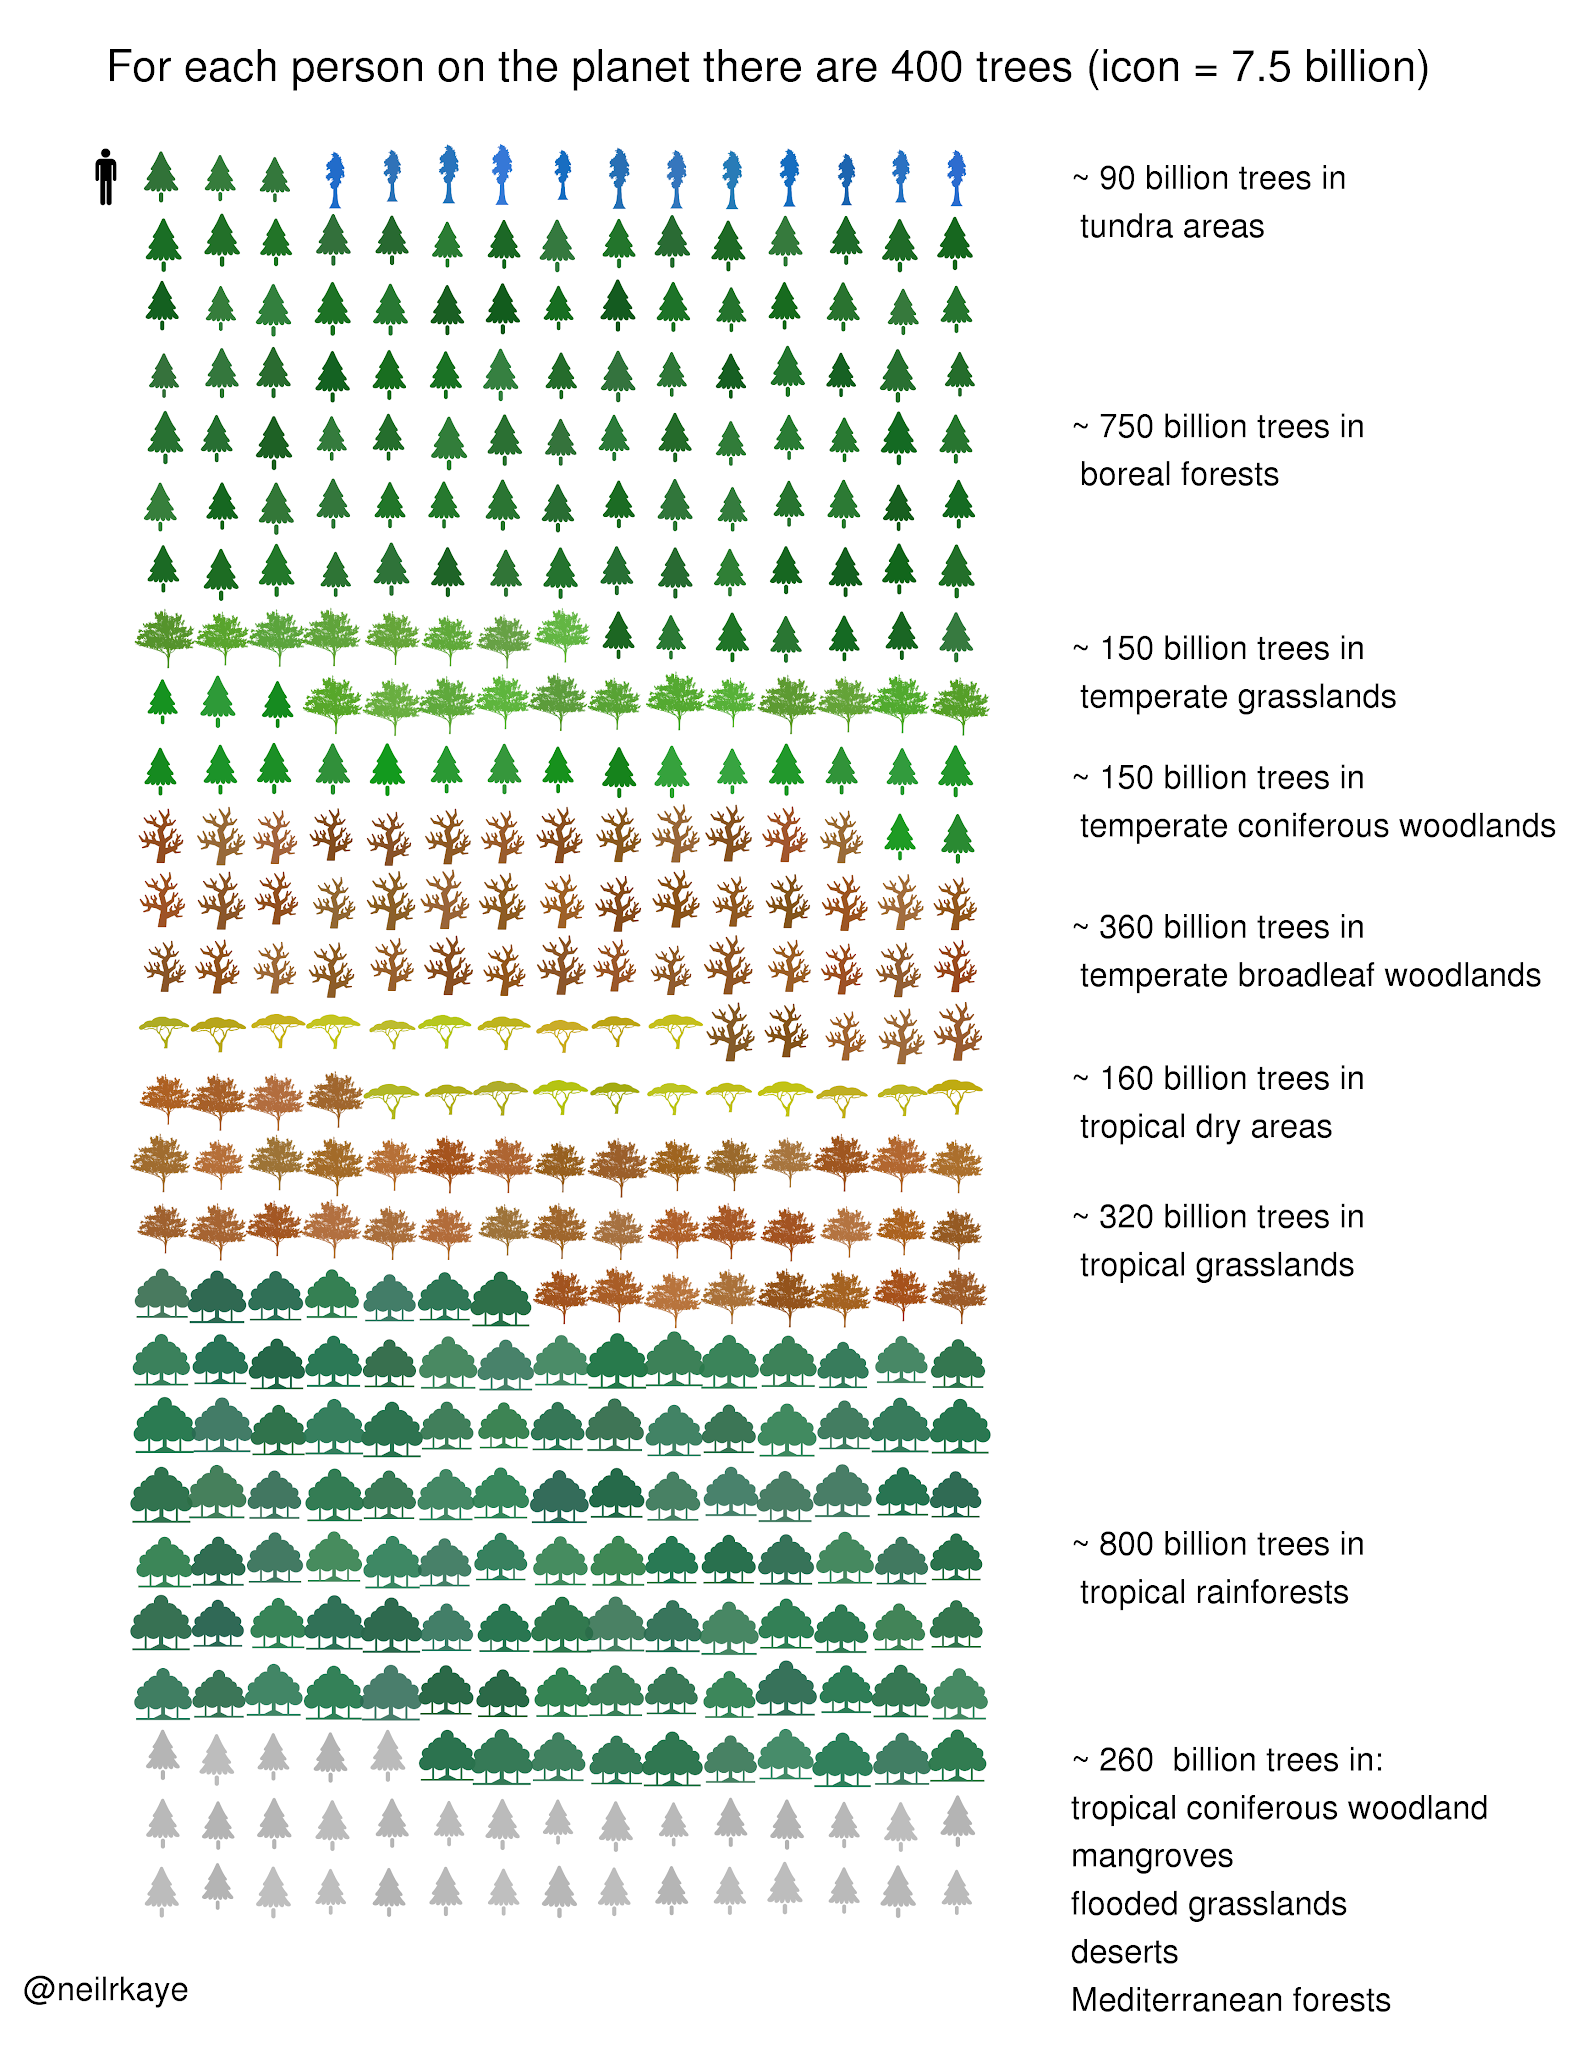 Number of trees on planet